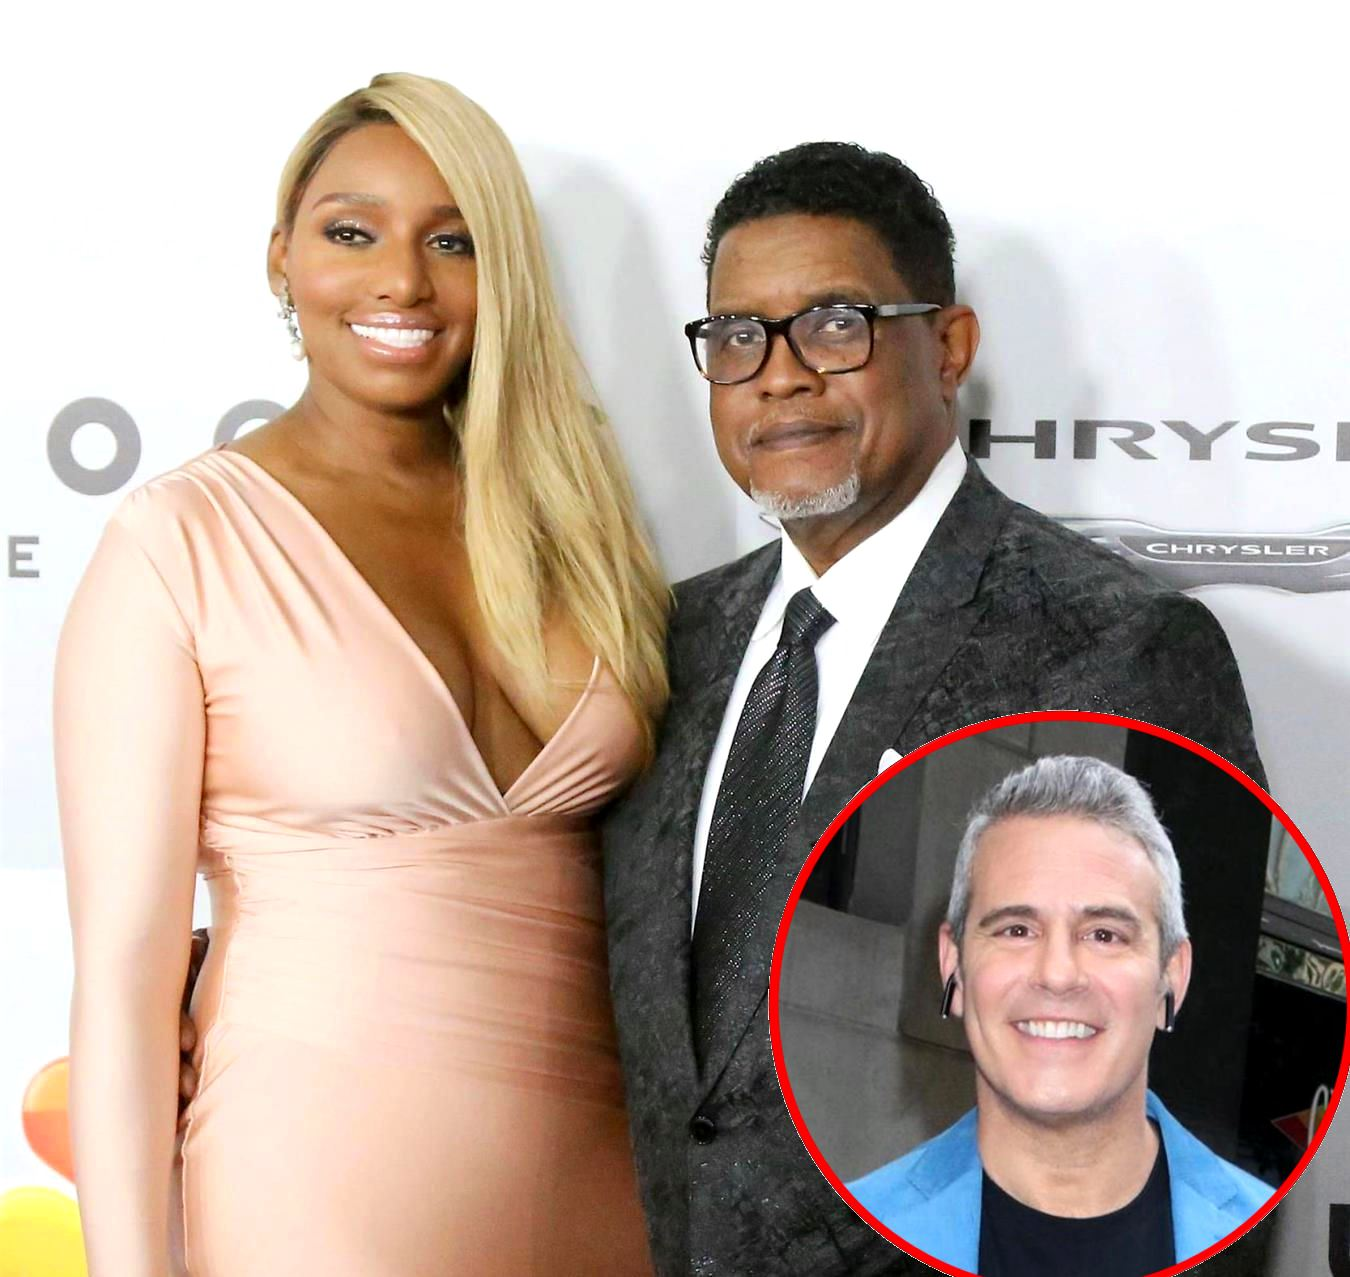 Nene Leakes Admits She Caught Husband Gregg Leakes Having an Inappropriate Relationship With Her Employee as Andy Cohen Confirms RHOA Reunion Has Been Postponed